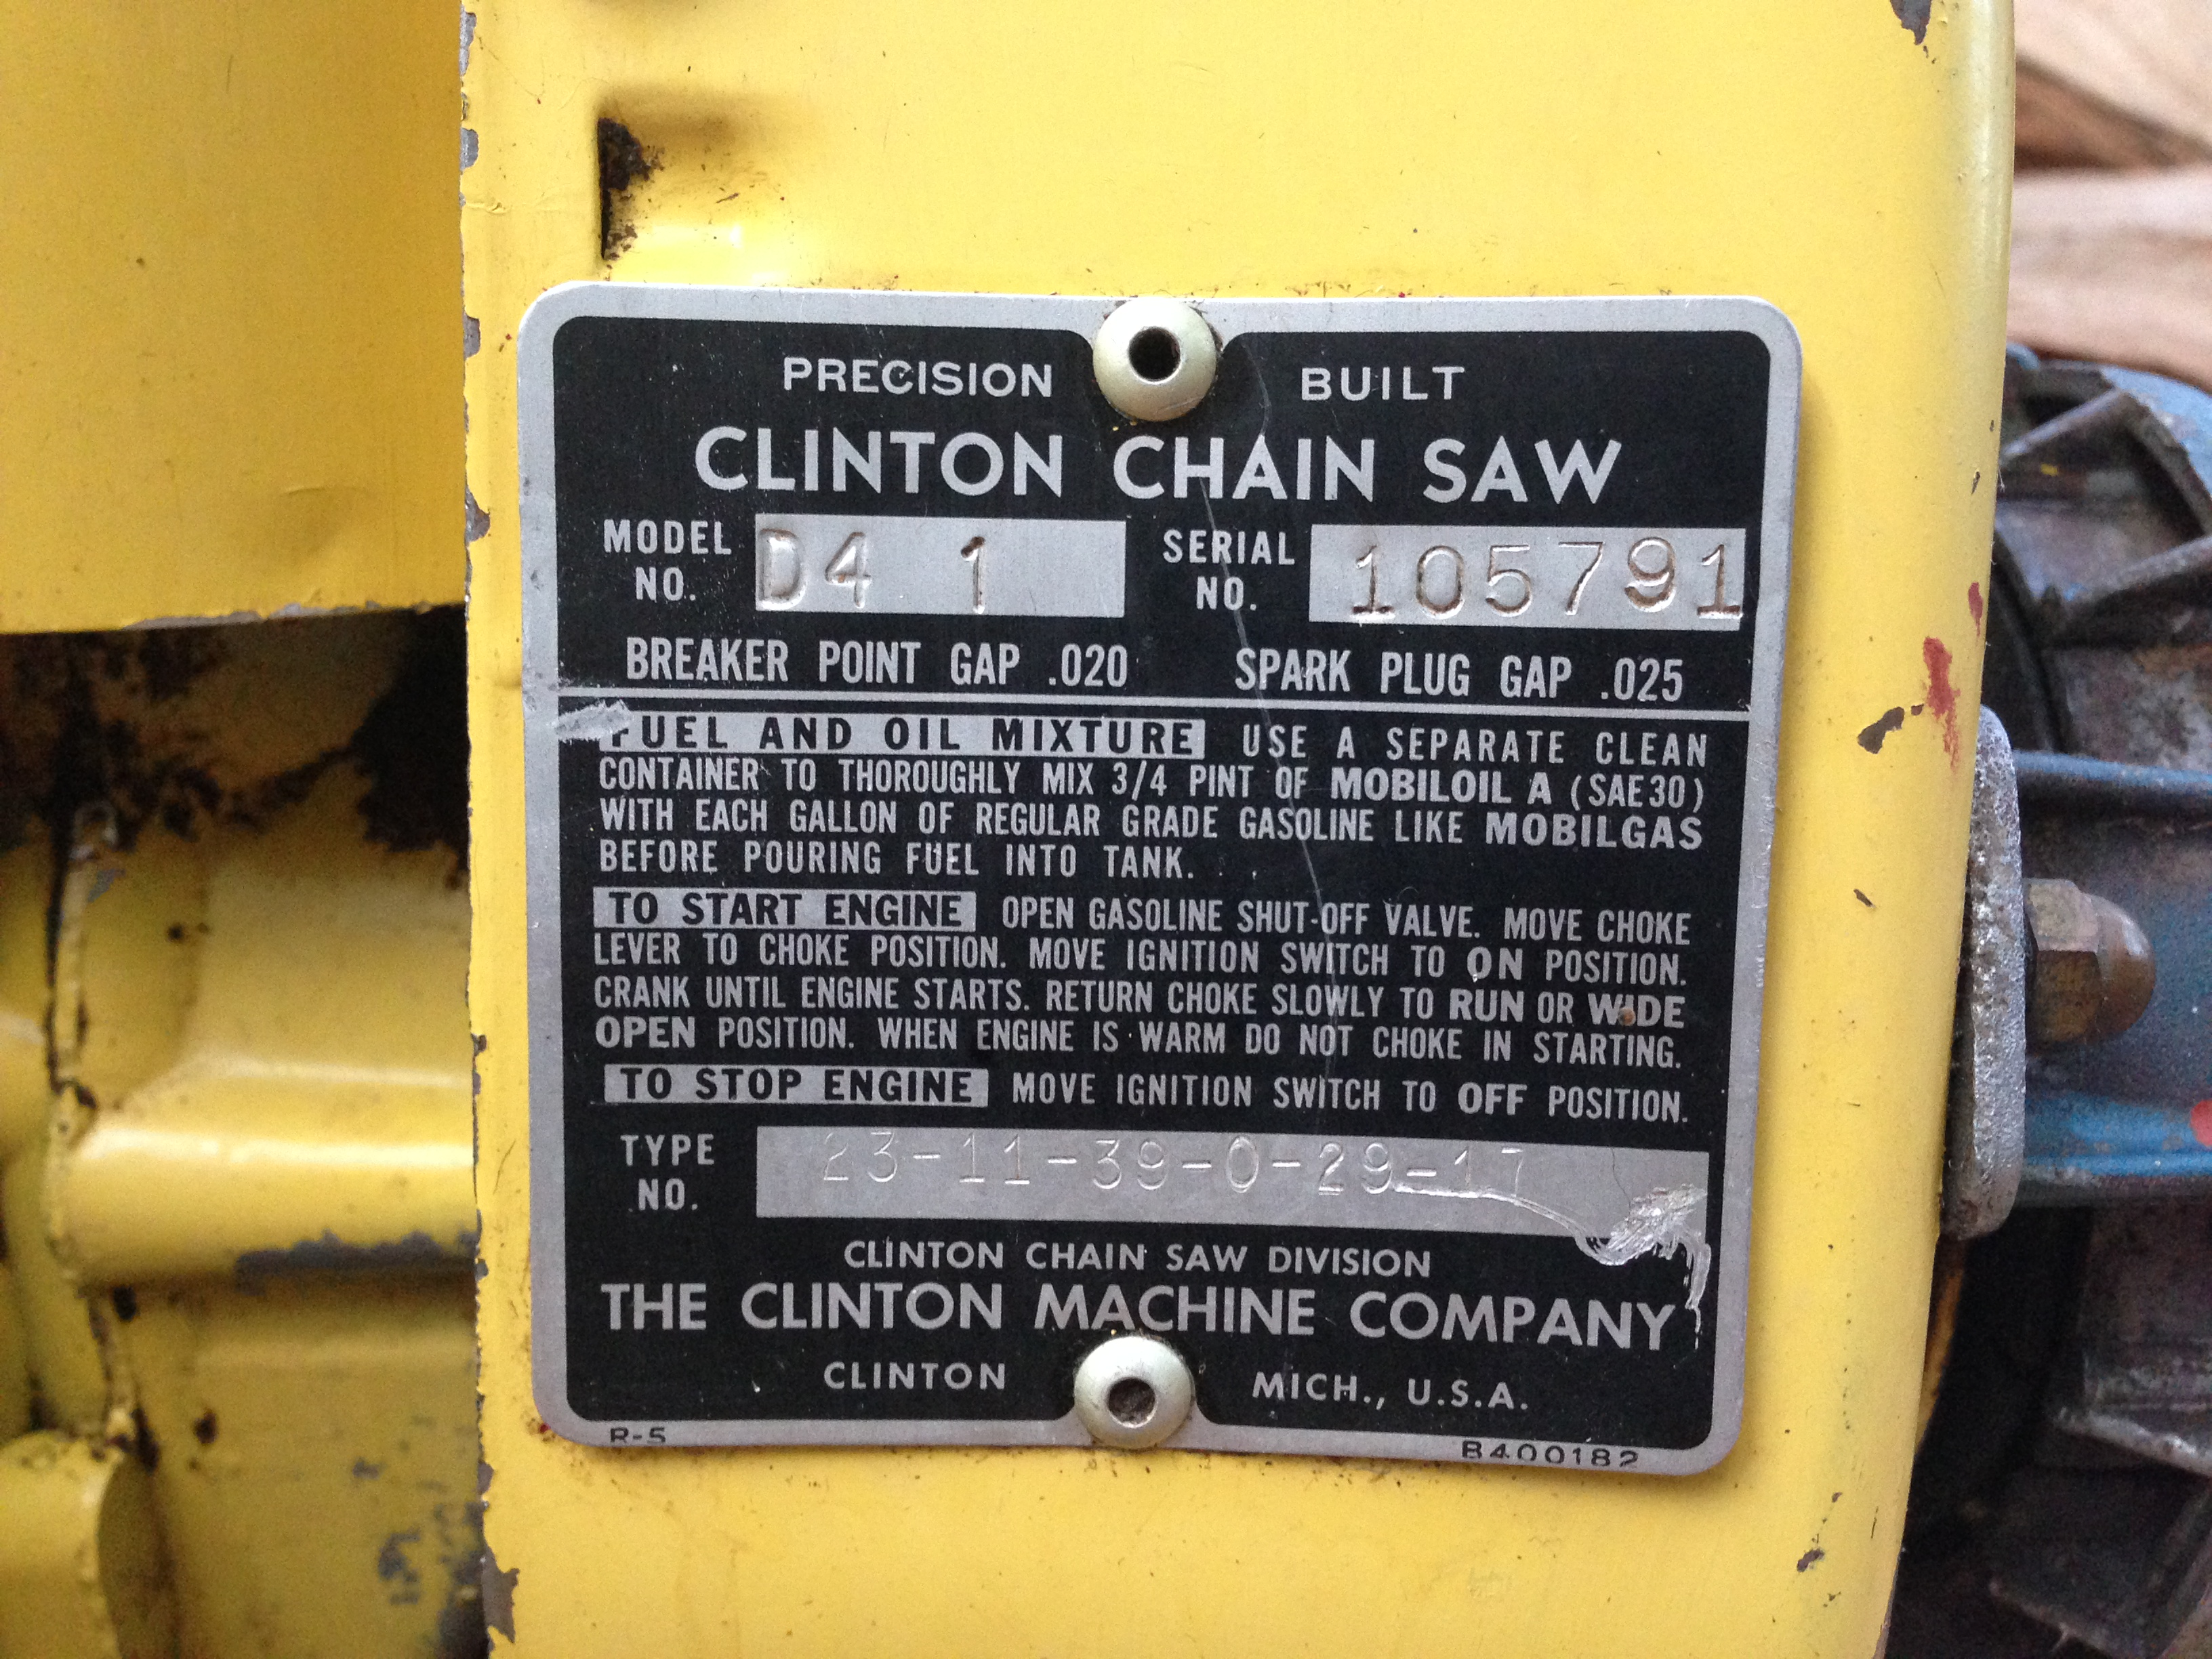 Clinton D4 vintage chainsaw #5.JPG